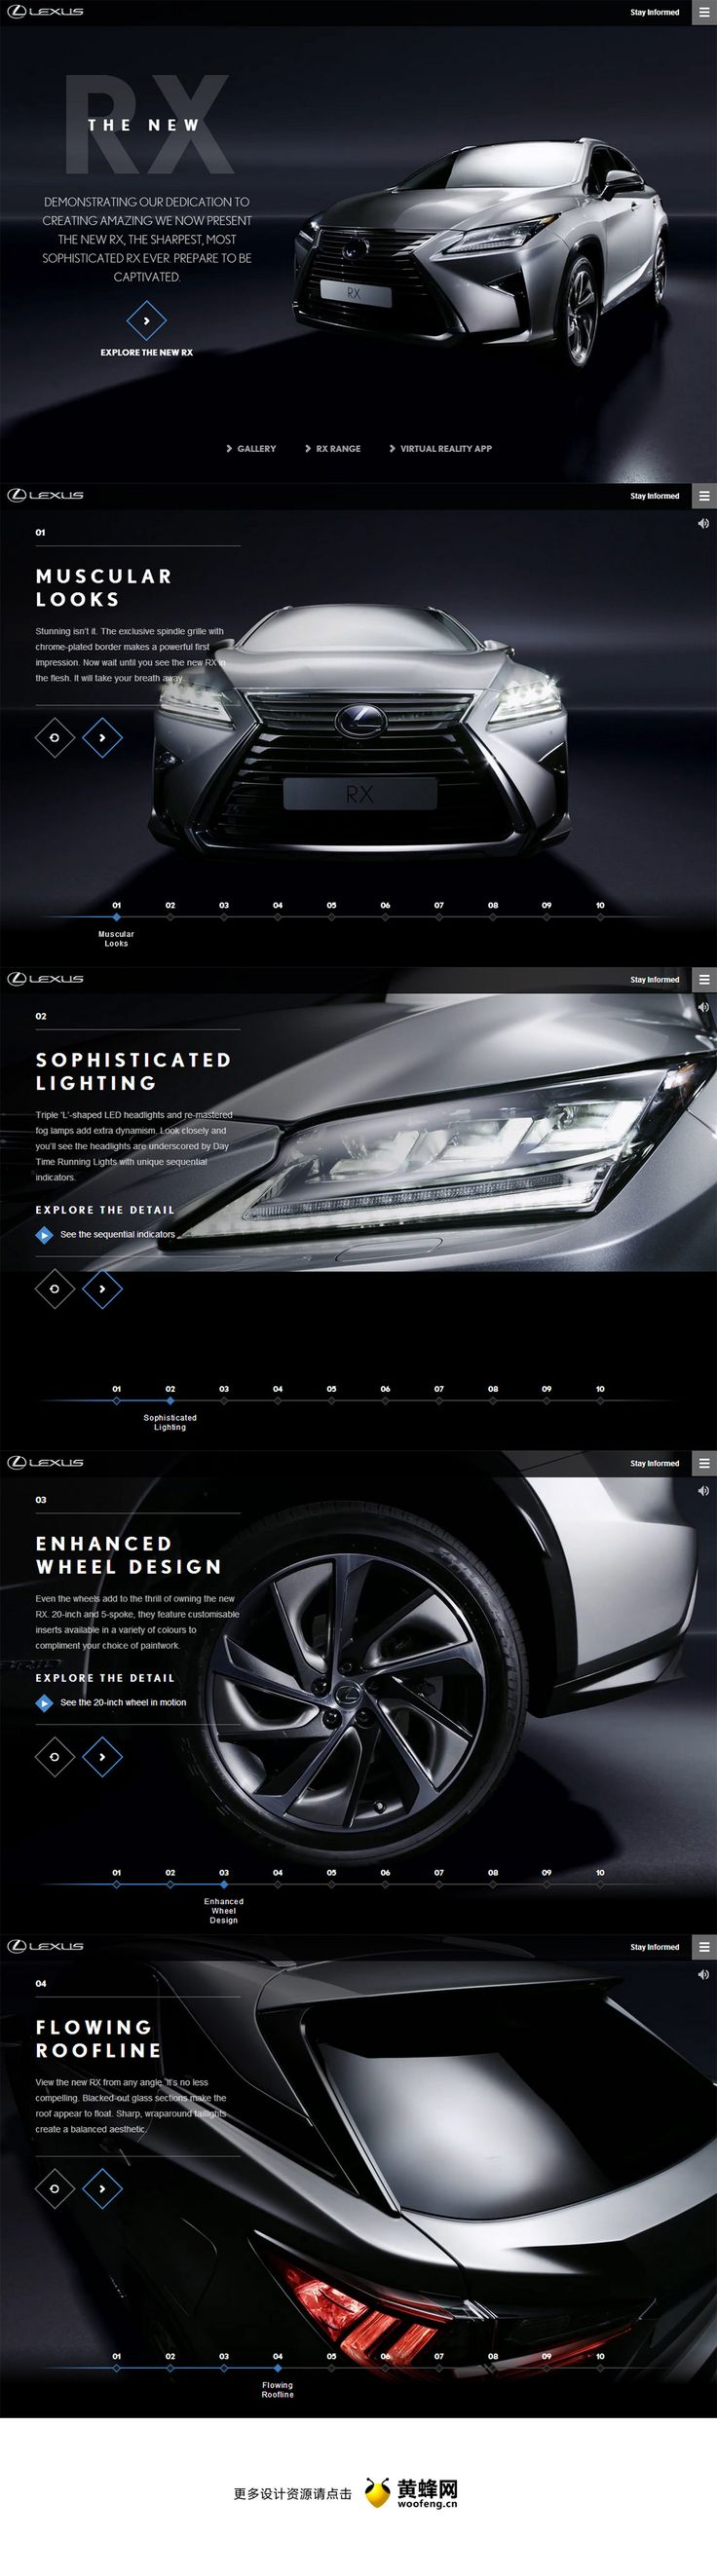 http://l1.lexus.co.uk/car-models/rx/rx-house/